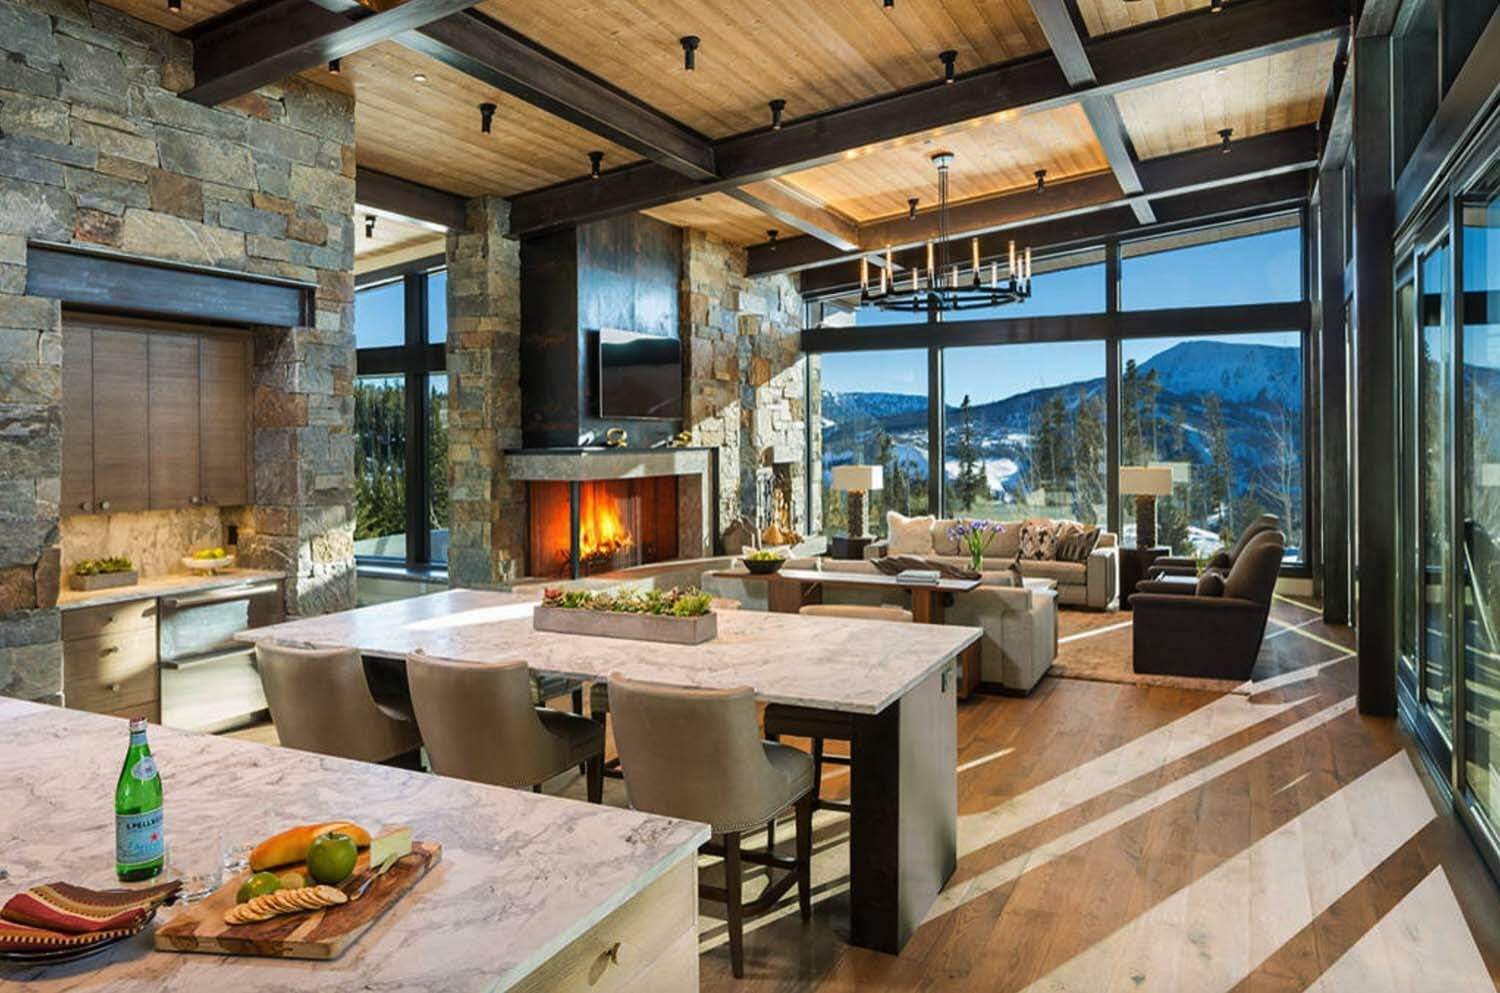 Modernrustic mountain home with spectacular views in Big